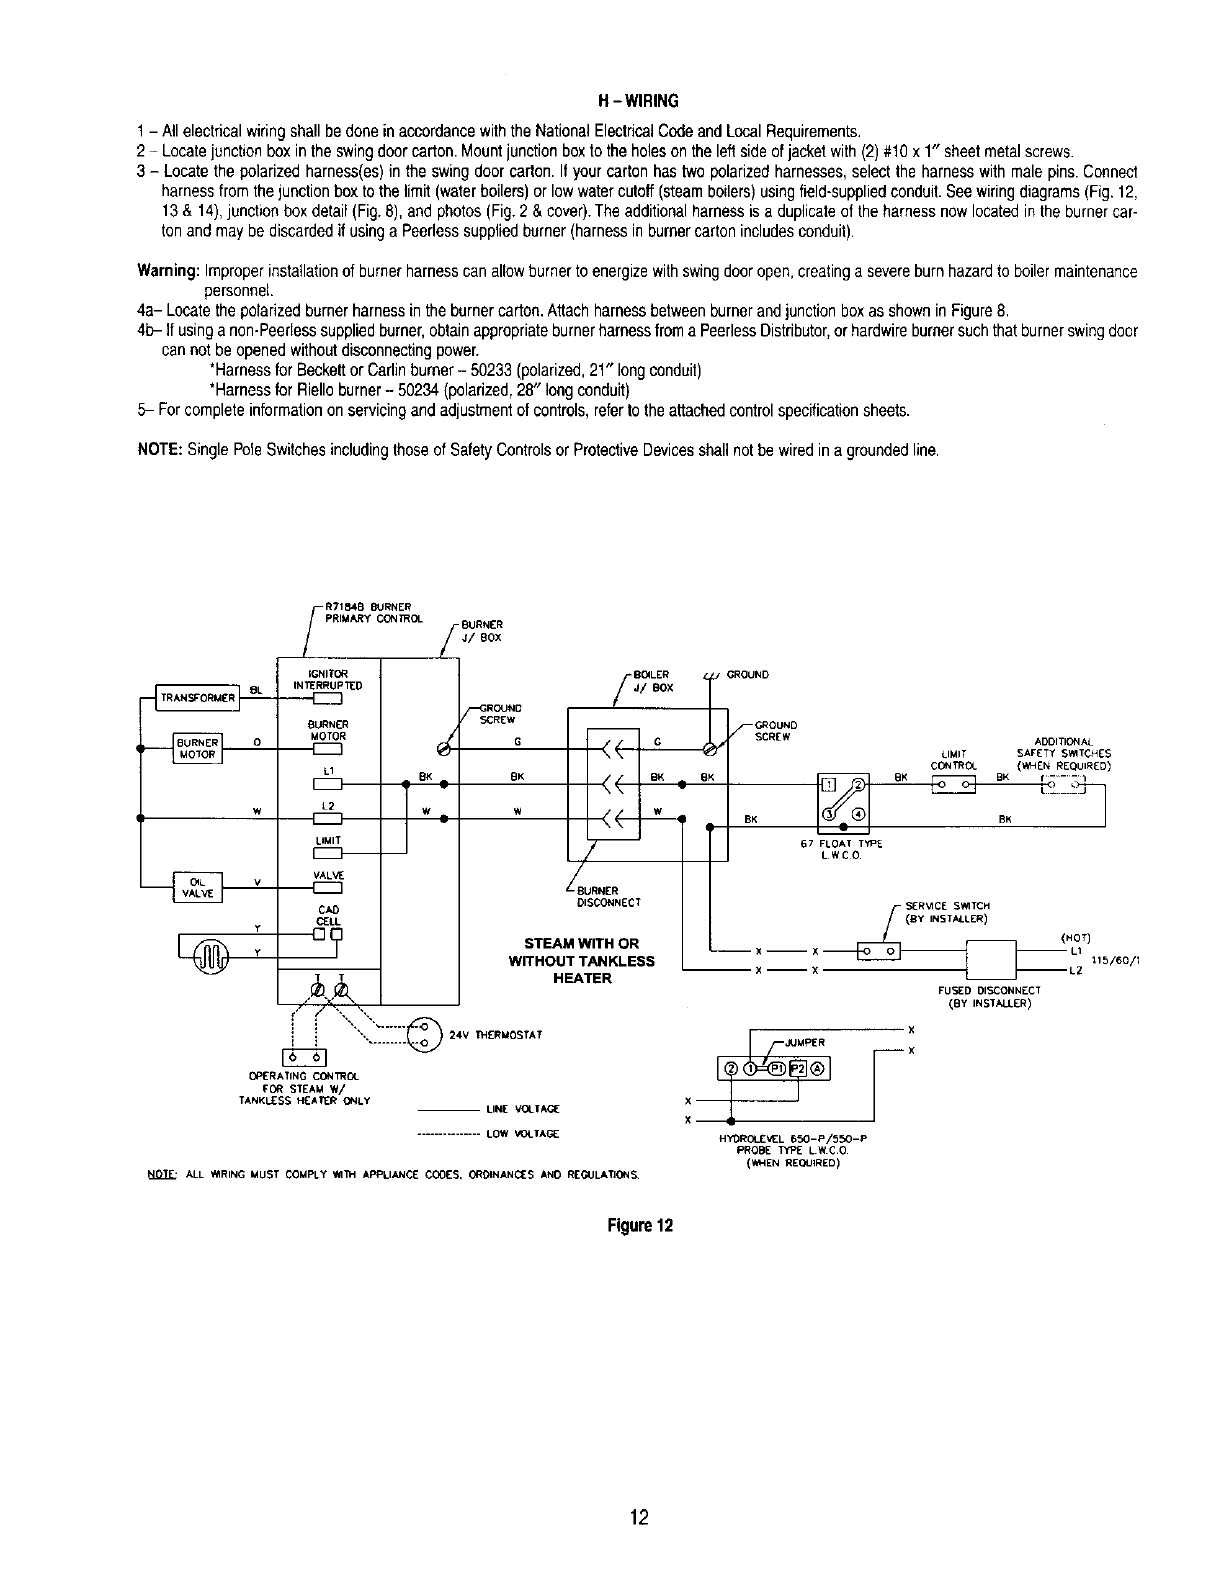 Ossa Pioneer Wiring Diagram : Beautiful boiler manual photos electrical and wiring